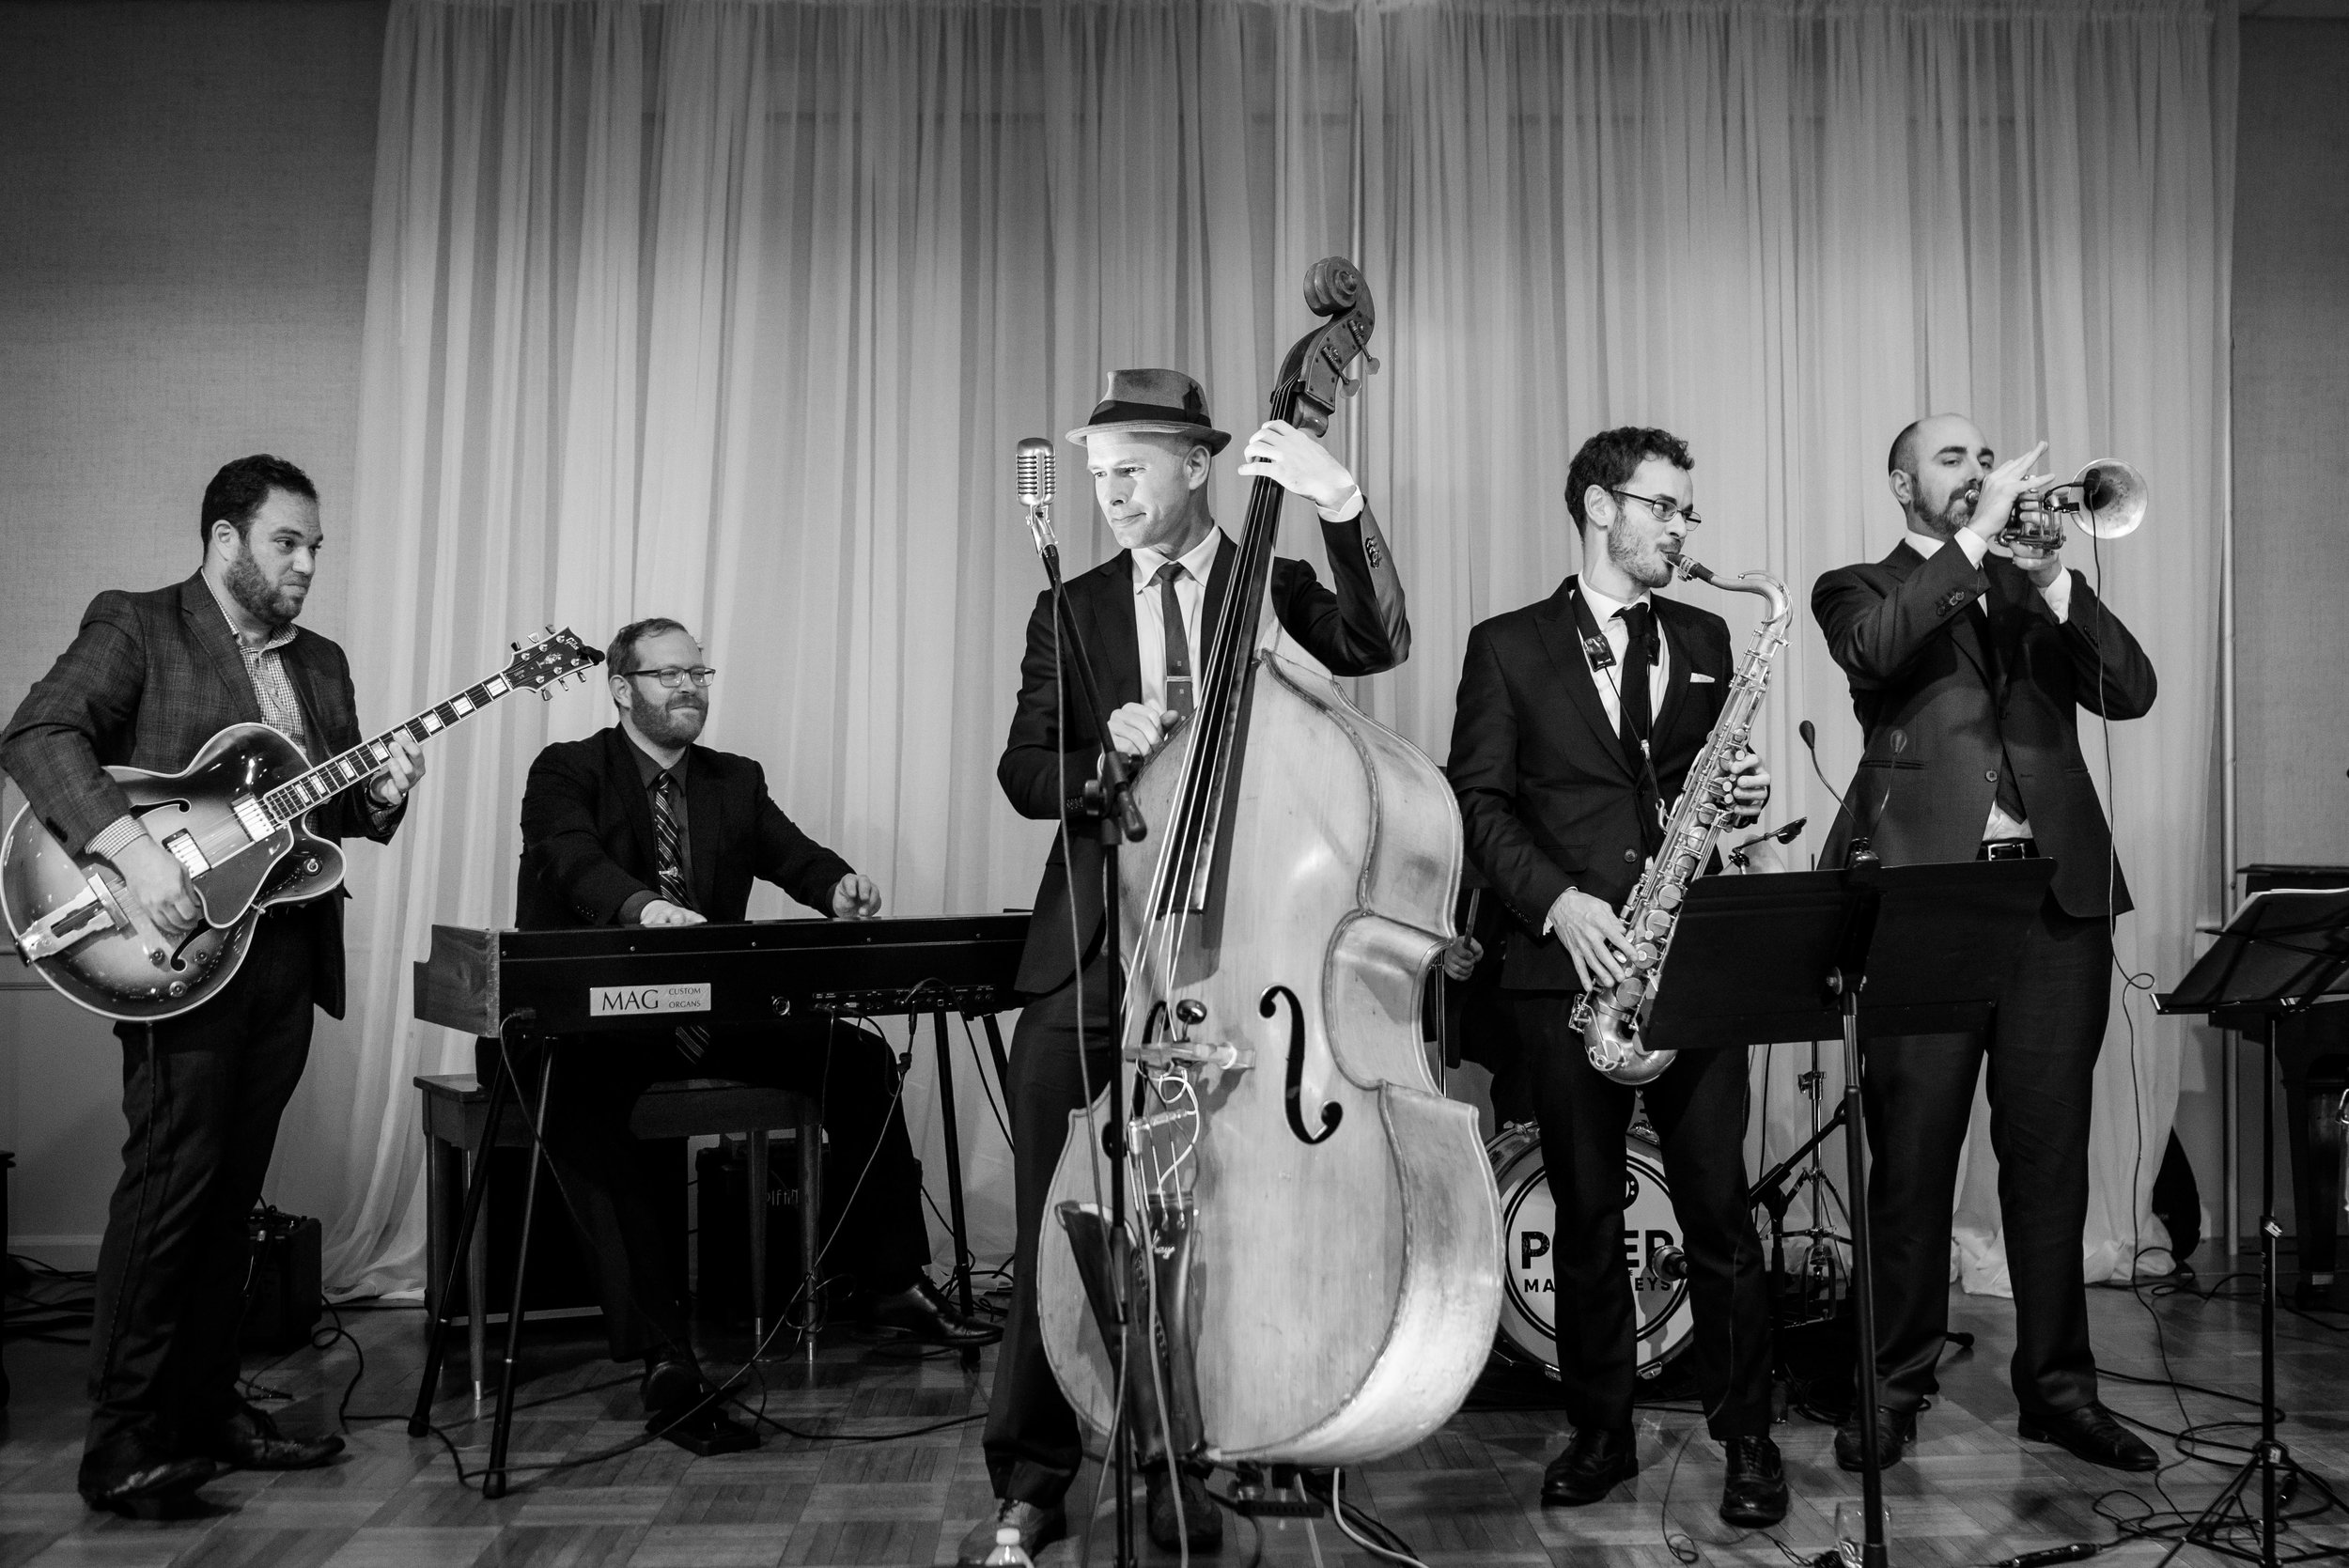 The Master Keys is more than a great jazz wedding band. We also play a ton of great old RnB for dancing.